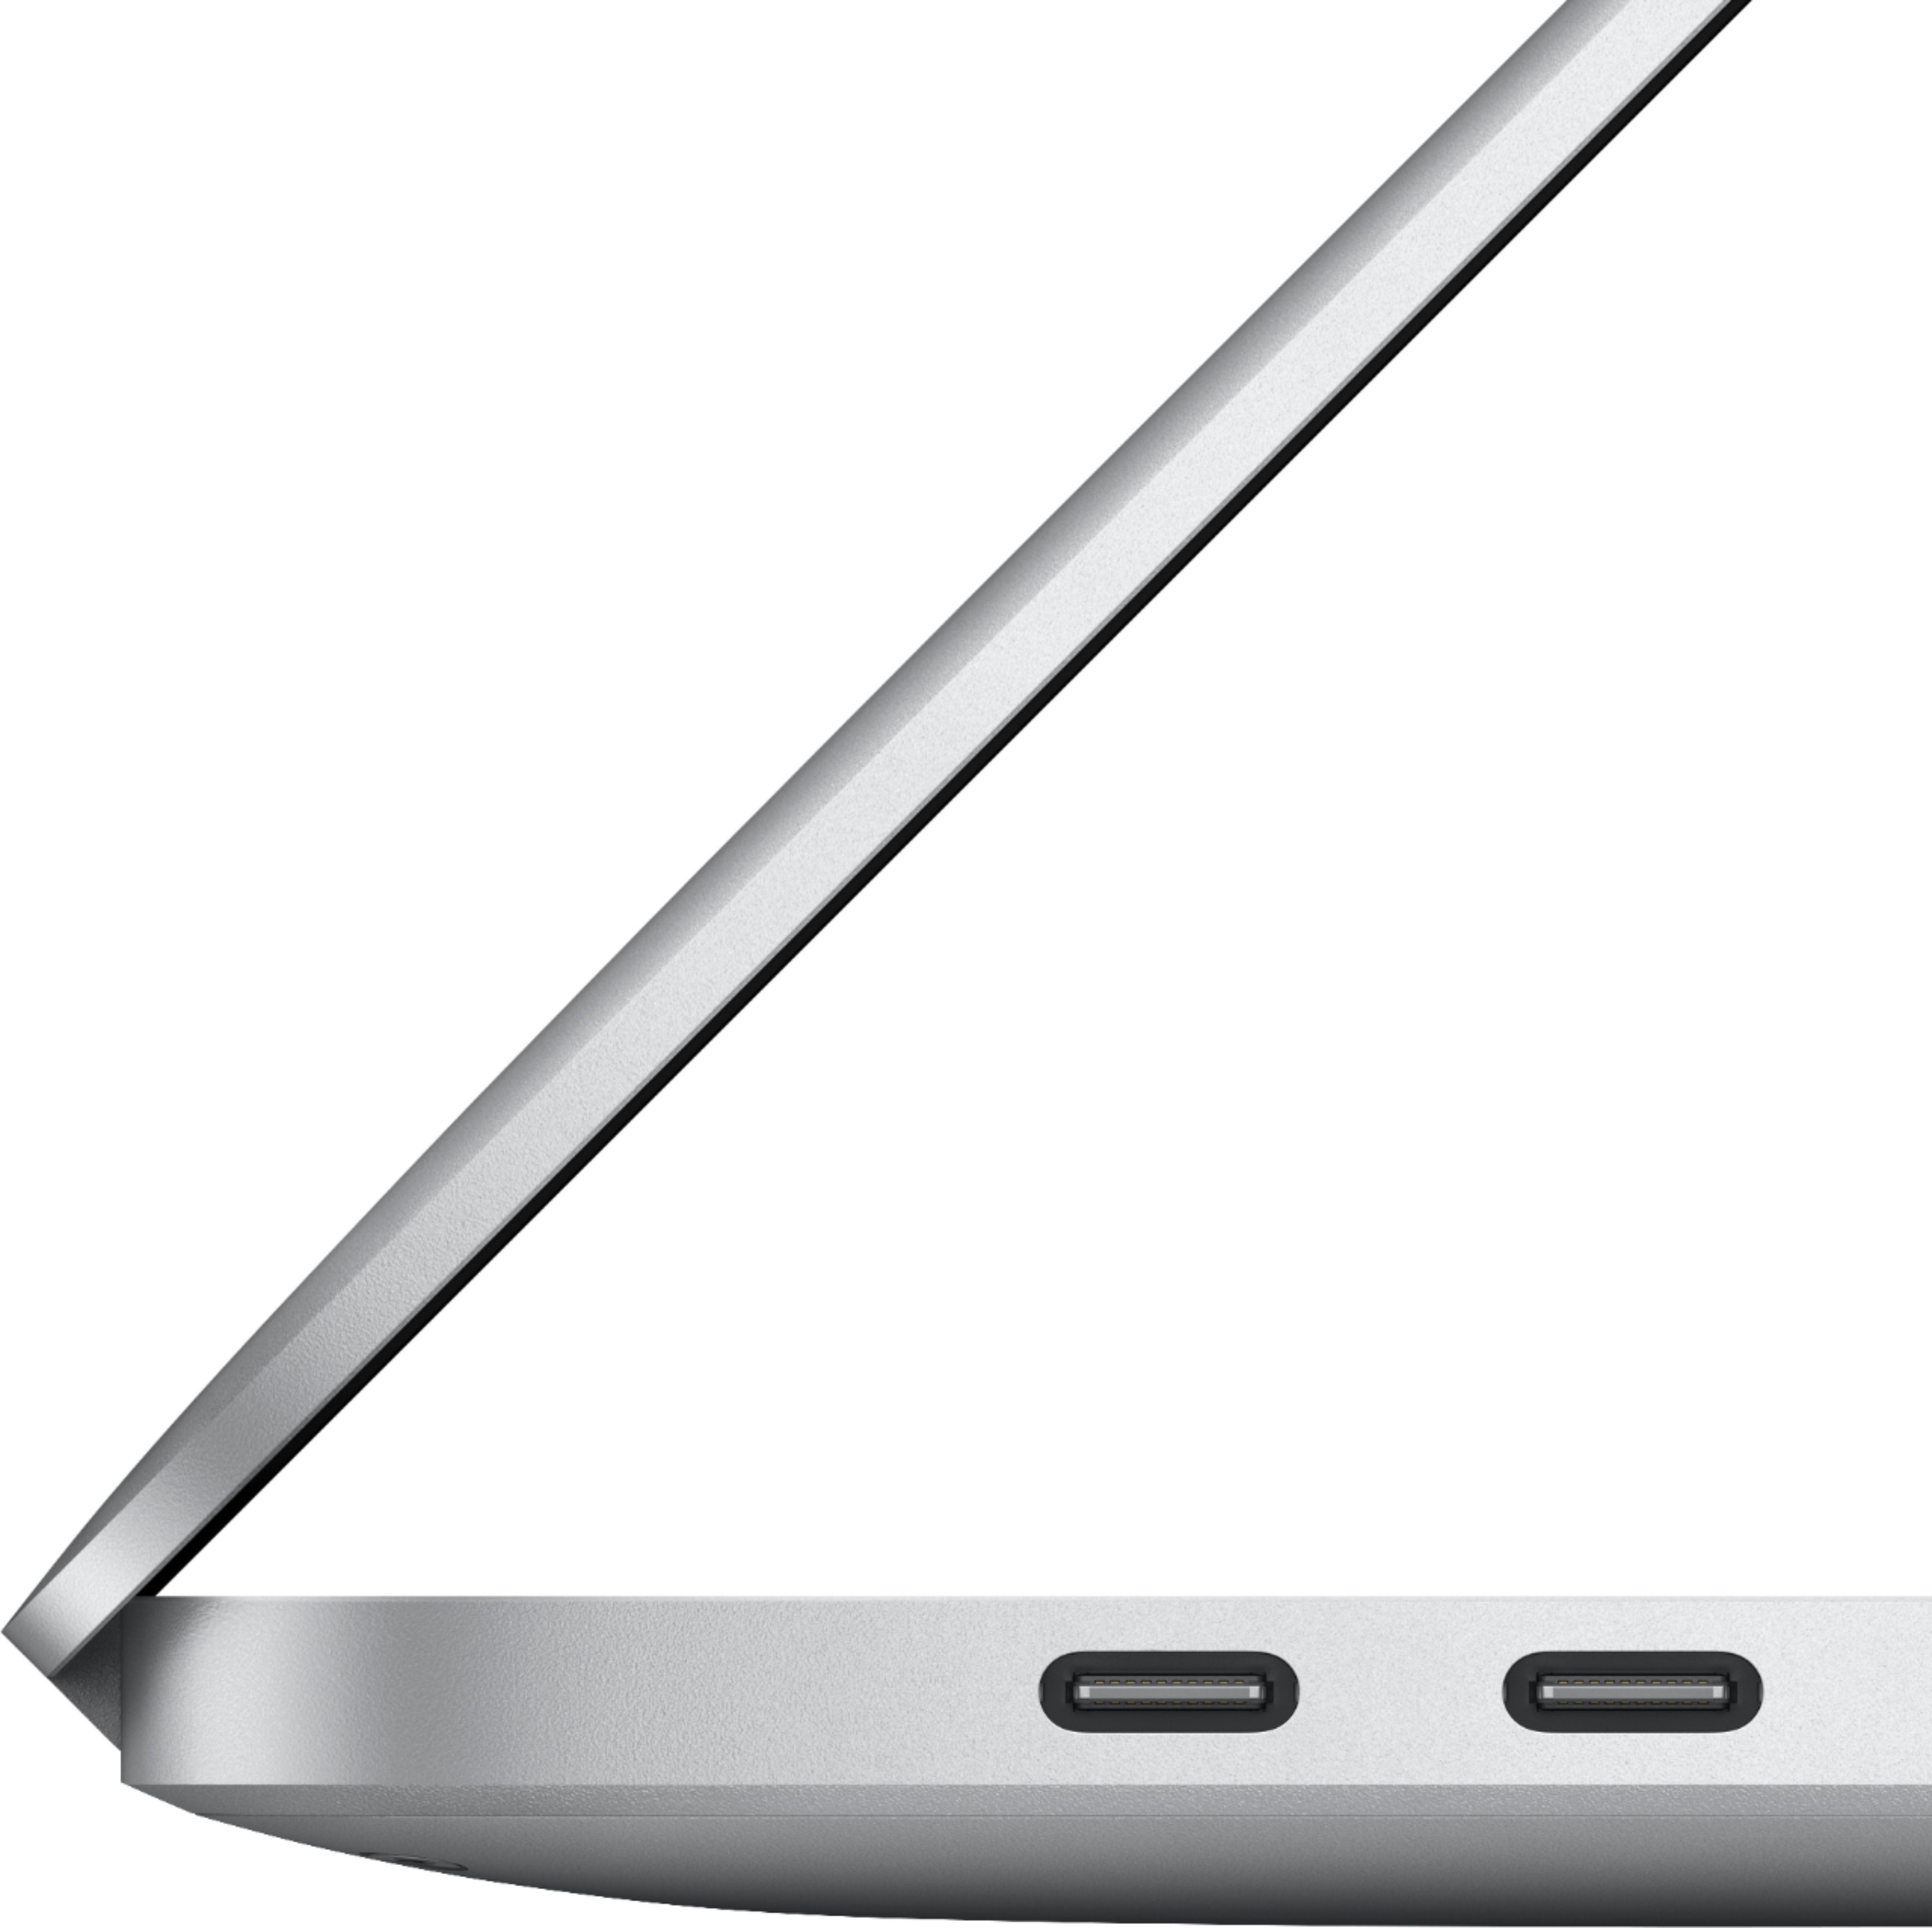 """Alt View Zoom 14. Apple - MacBook Pro - 16"""" Display with Touch Bar - Intel Core i7 - 16GB Memory - AMD Radeon Pro 5300M - 512GB SSD (Latest Model) - Silver."""